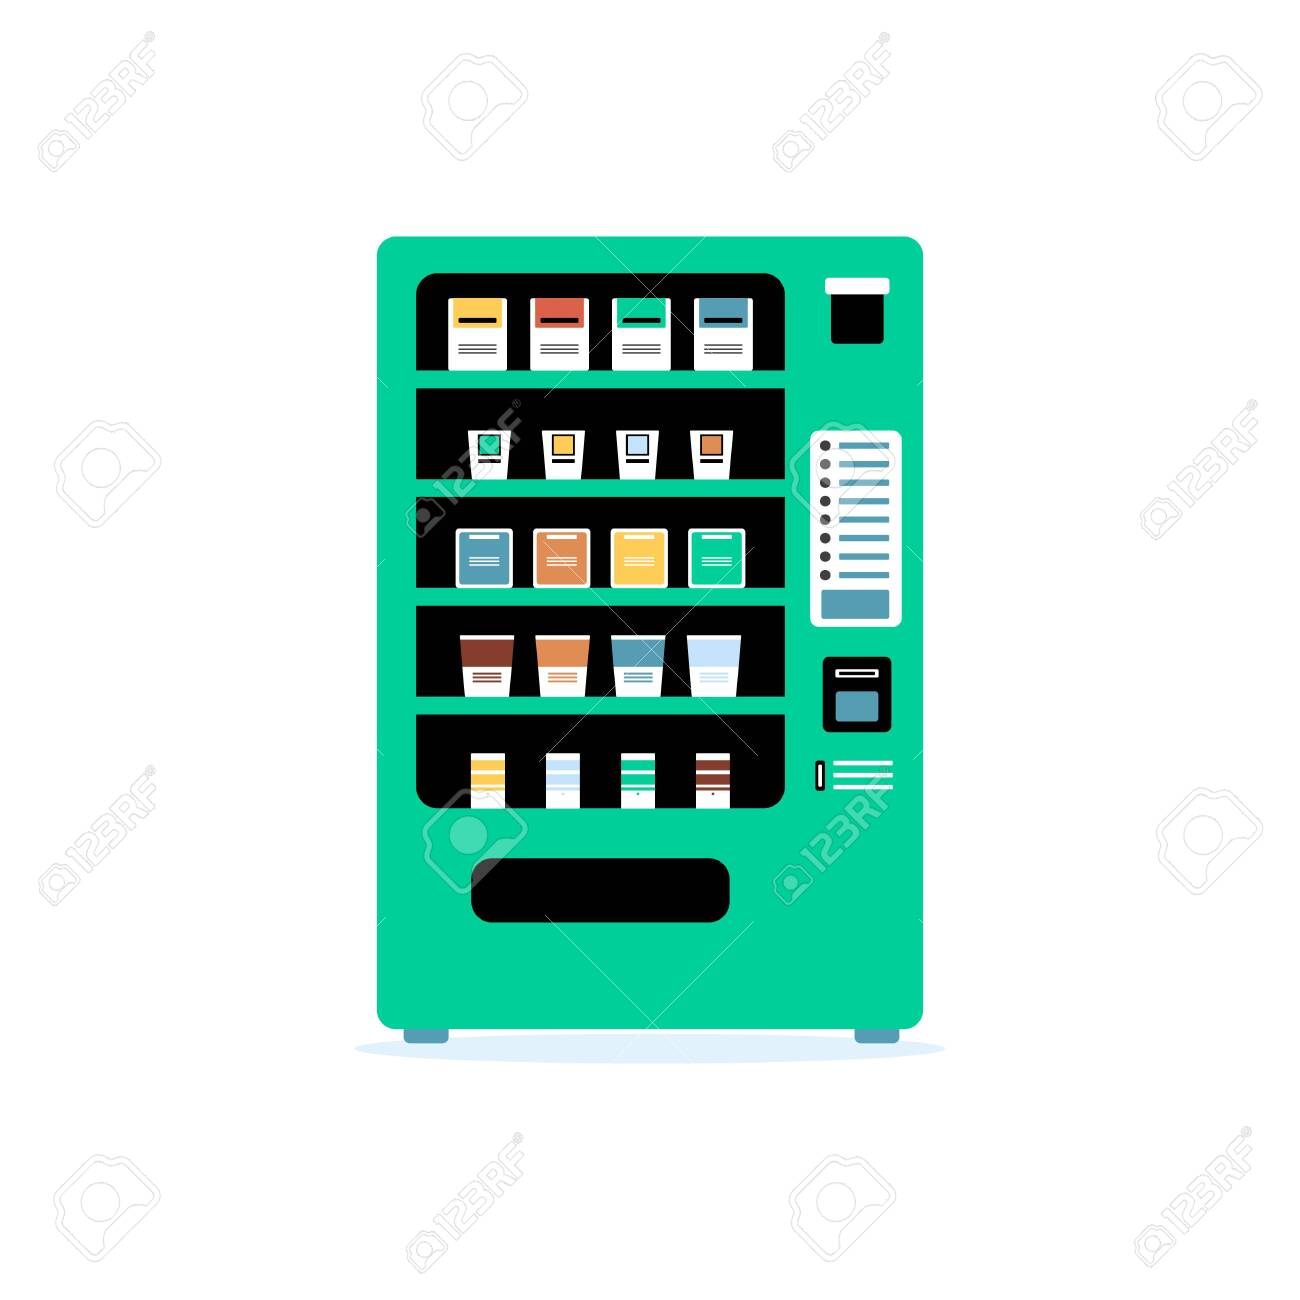 Teal Green Vending Machine Flat Isolated Vector Illustration Royalty Free Cliparts Vectors And Stock Illustration Image 128948115